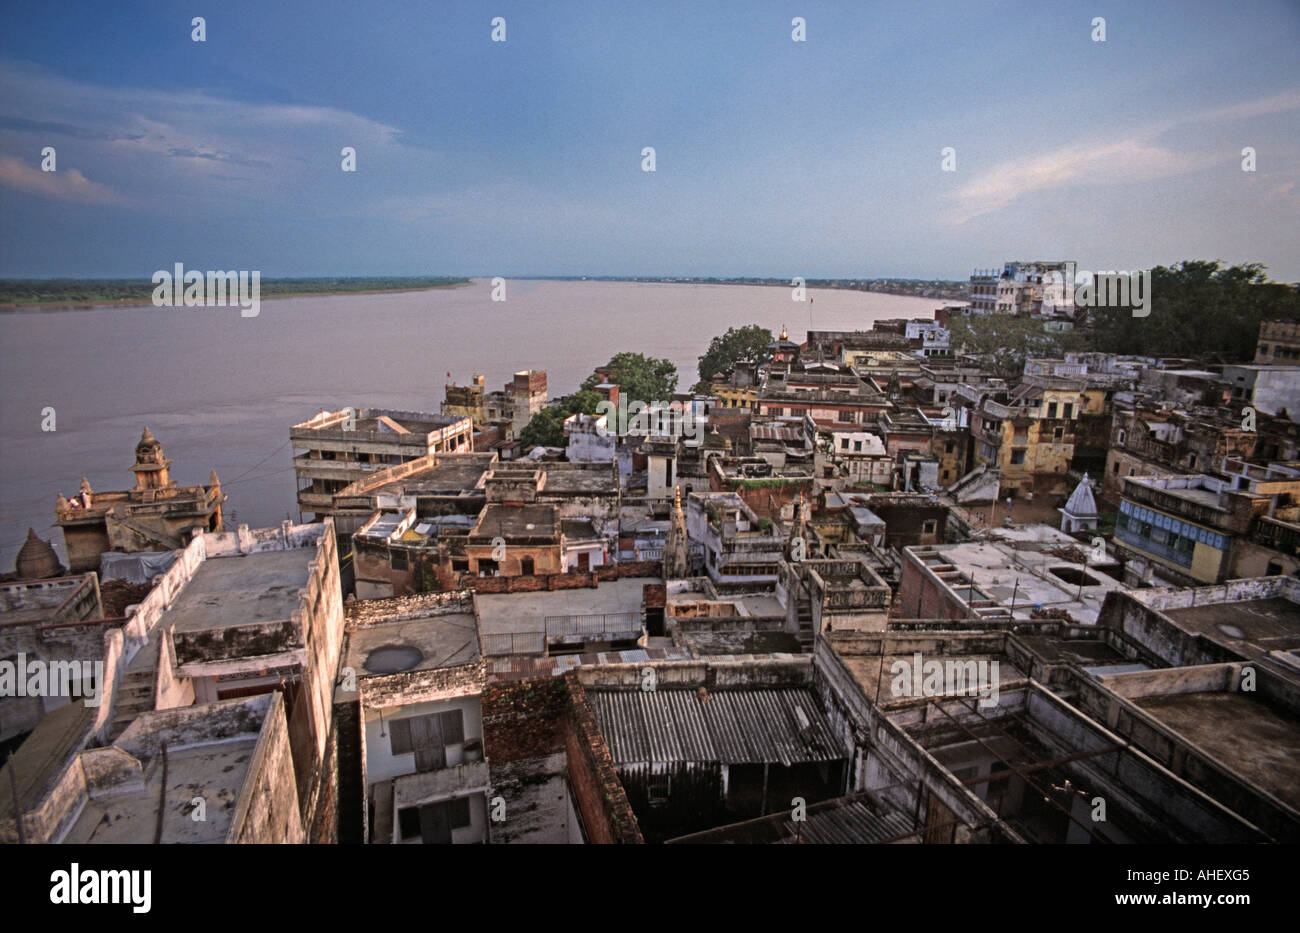 Scene over the rooftops of Varanasi and the Ganges river Uttar Pradesh India Rooftop cafe view - Stock Image